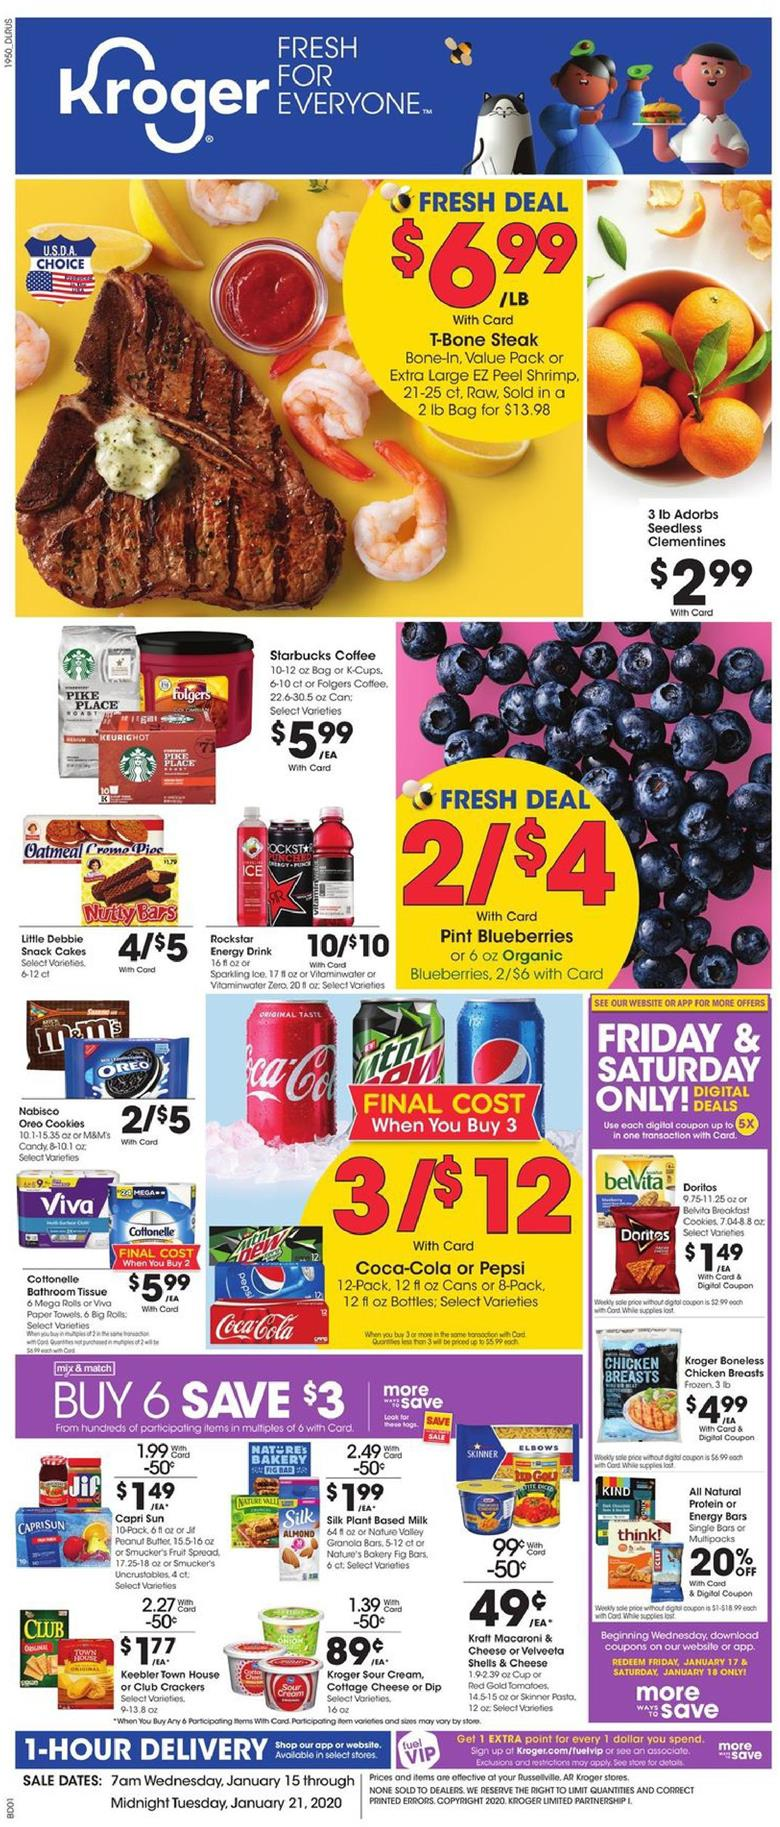 kroger weekly ad jan 15 2020